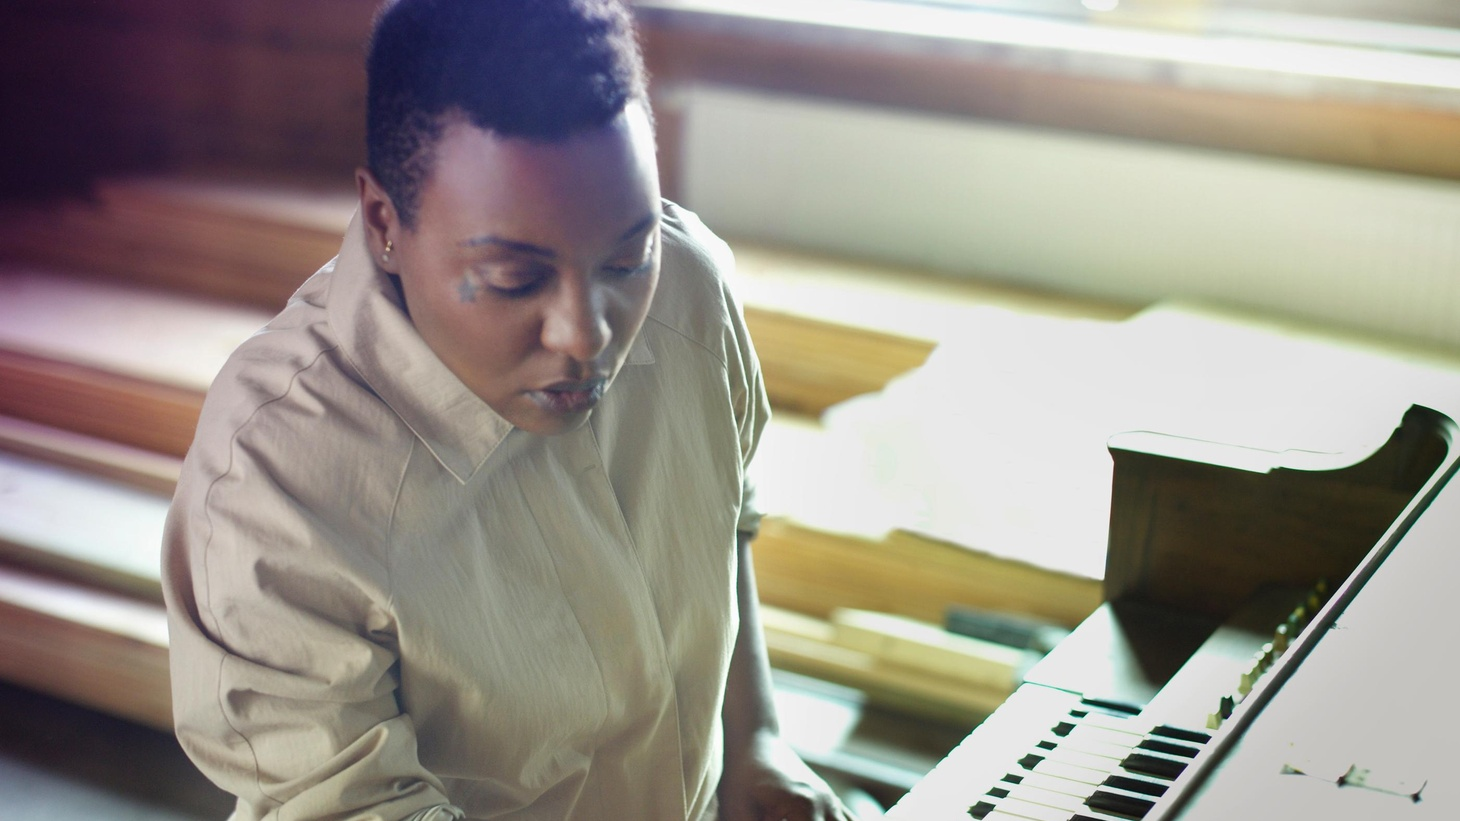 Bassist extraordinaire Meshell Ndegeocello dedicates her tenth studio album to Nina Simone, a pioneering spirit in music and the civil rights movement.